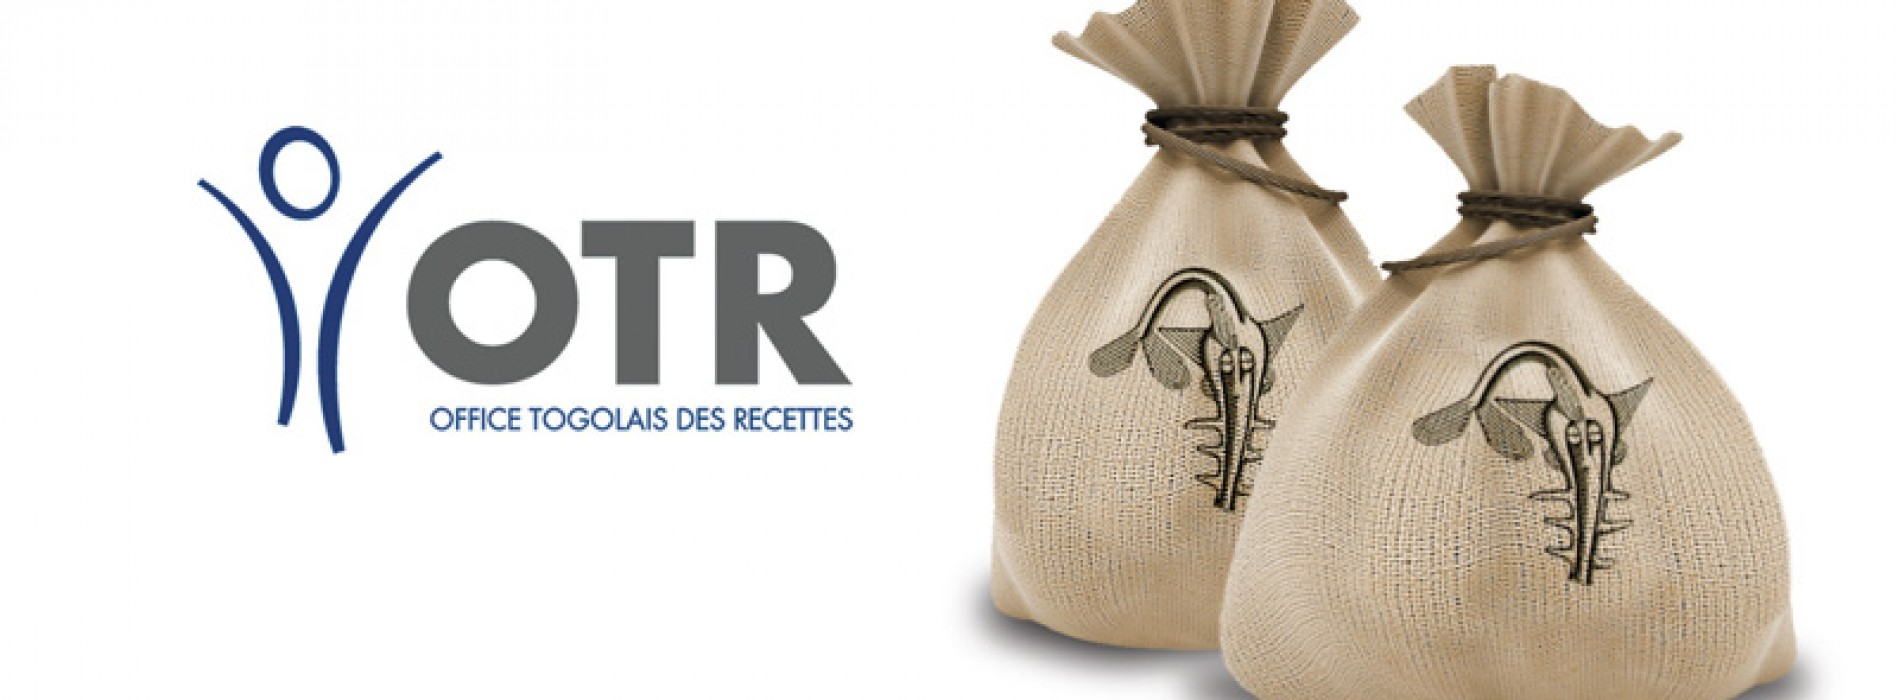 Togo: The TRO expects to collect CAF 625 billion in 2017